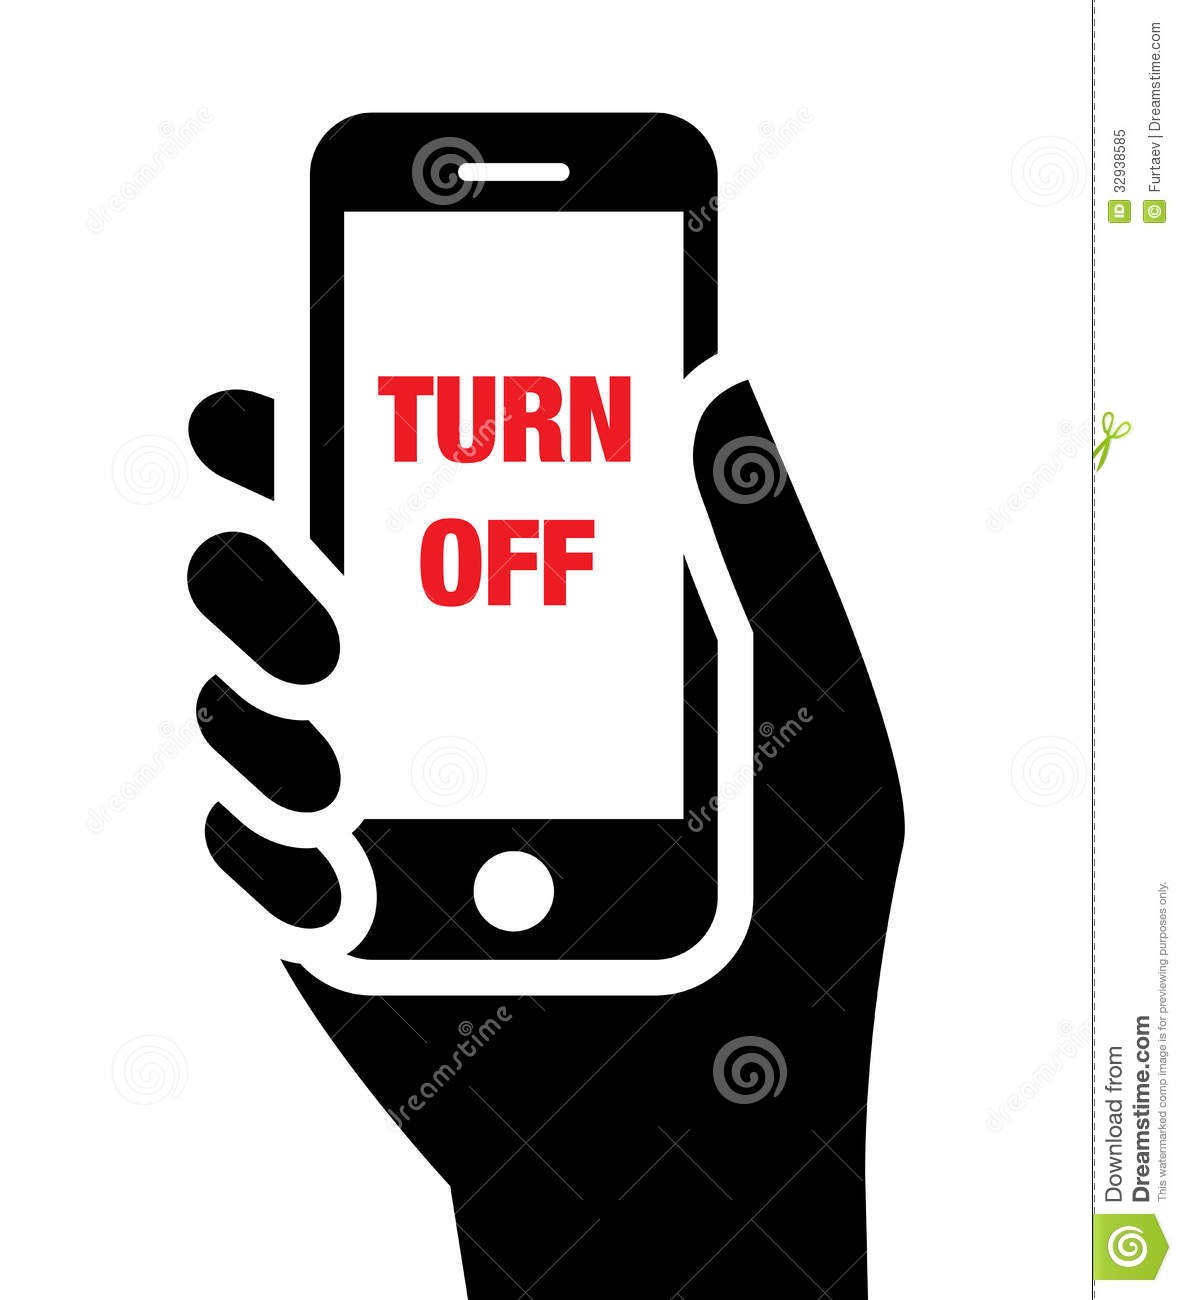 Turn Off Mobile Phones Icon Royalty Free Stock Photo - Image: 32938585 Under Construction Signs